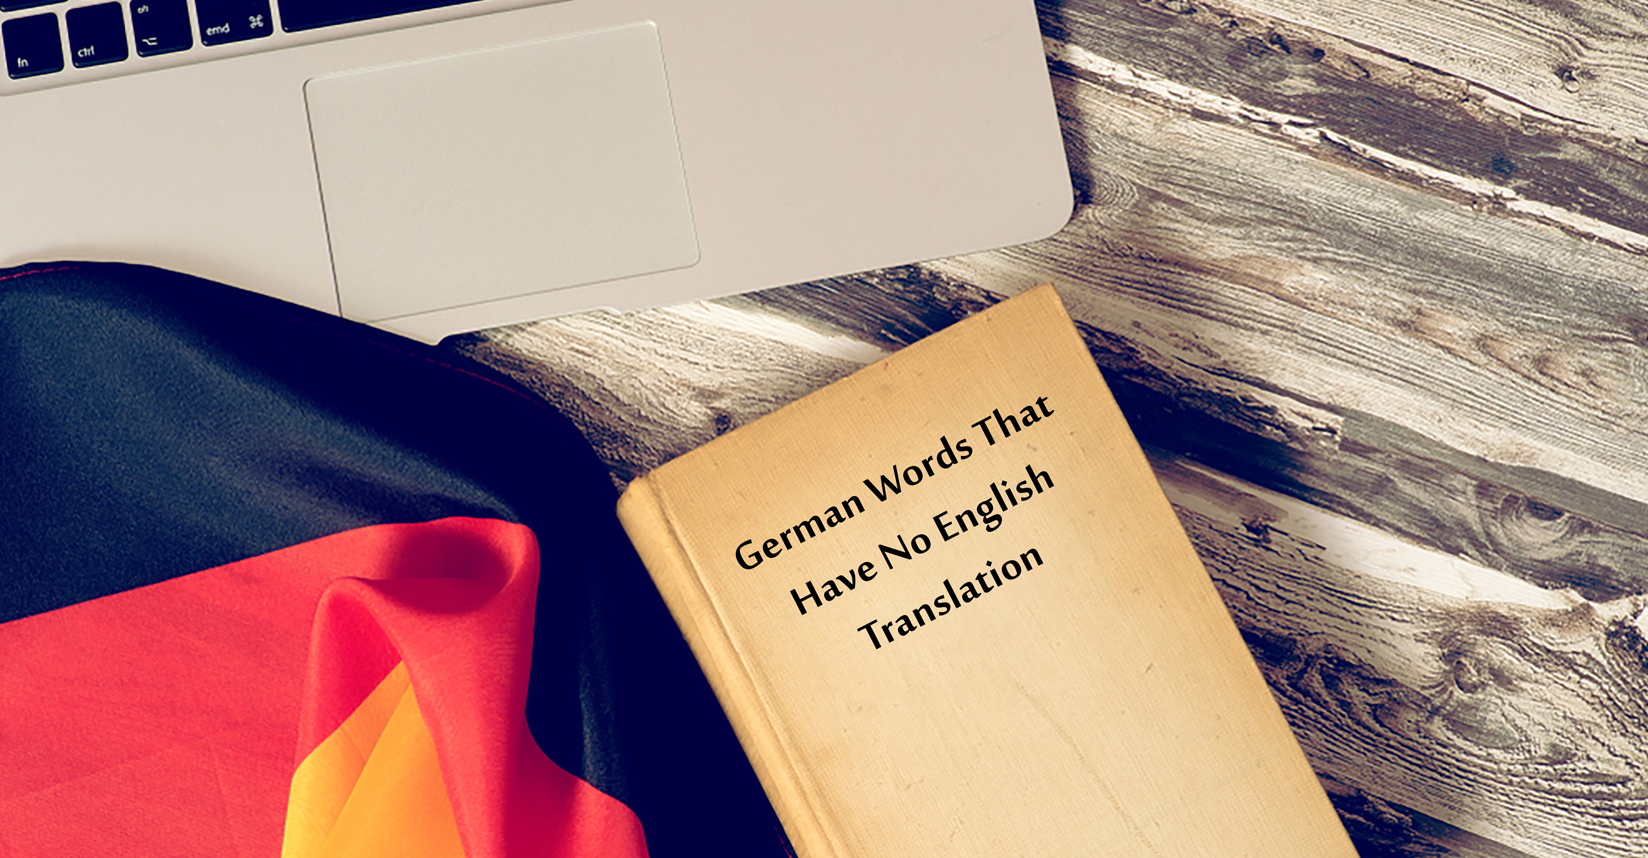 German Words That Has No English Translation